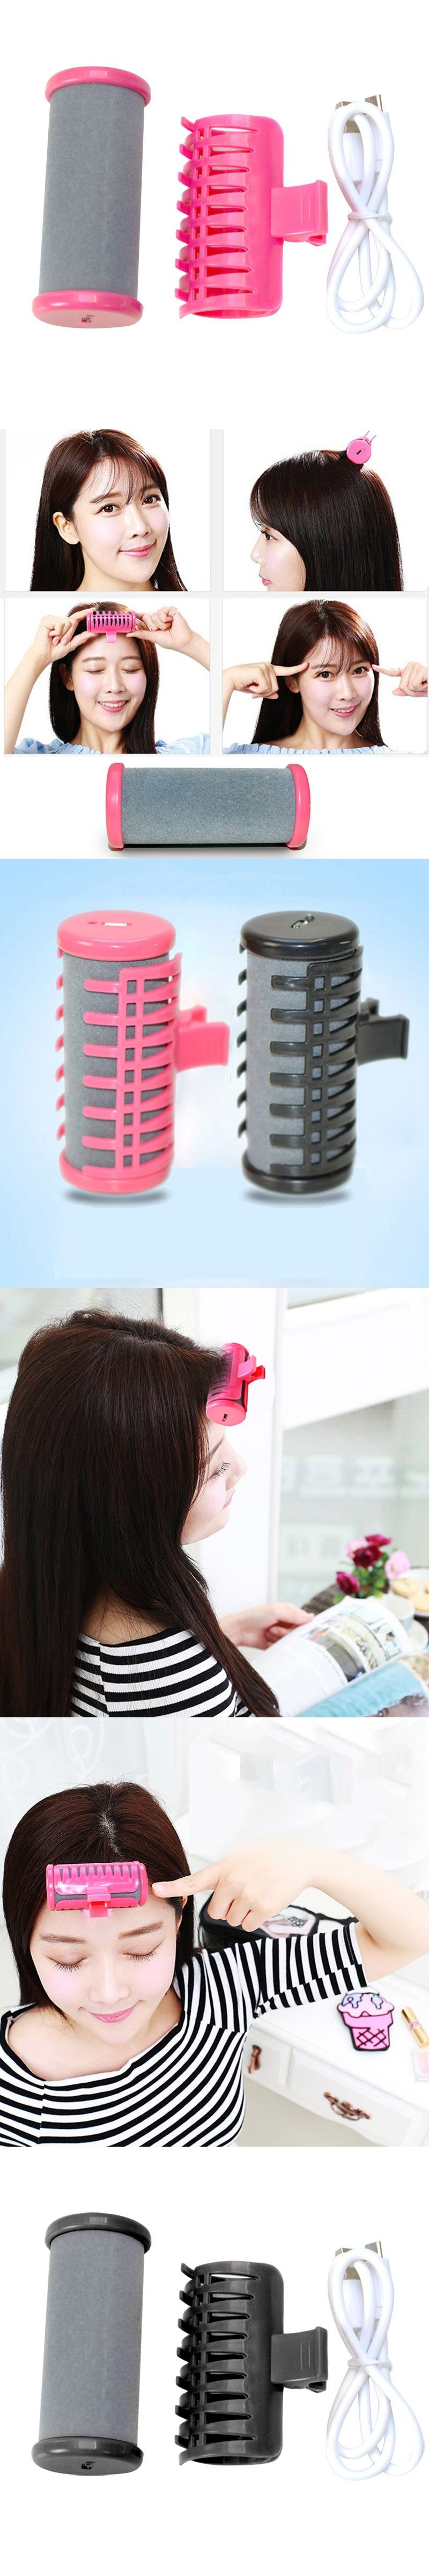 2 Colors DIY Hair Heated Curler Rollers Curling Iron with USB Cable